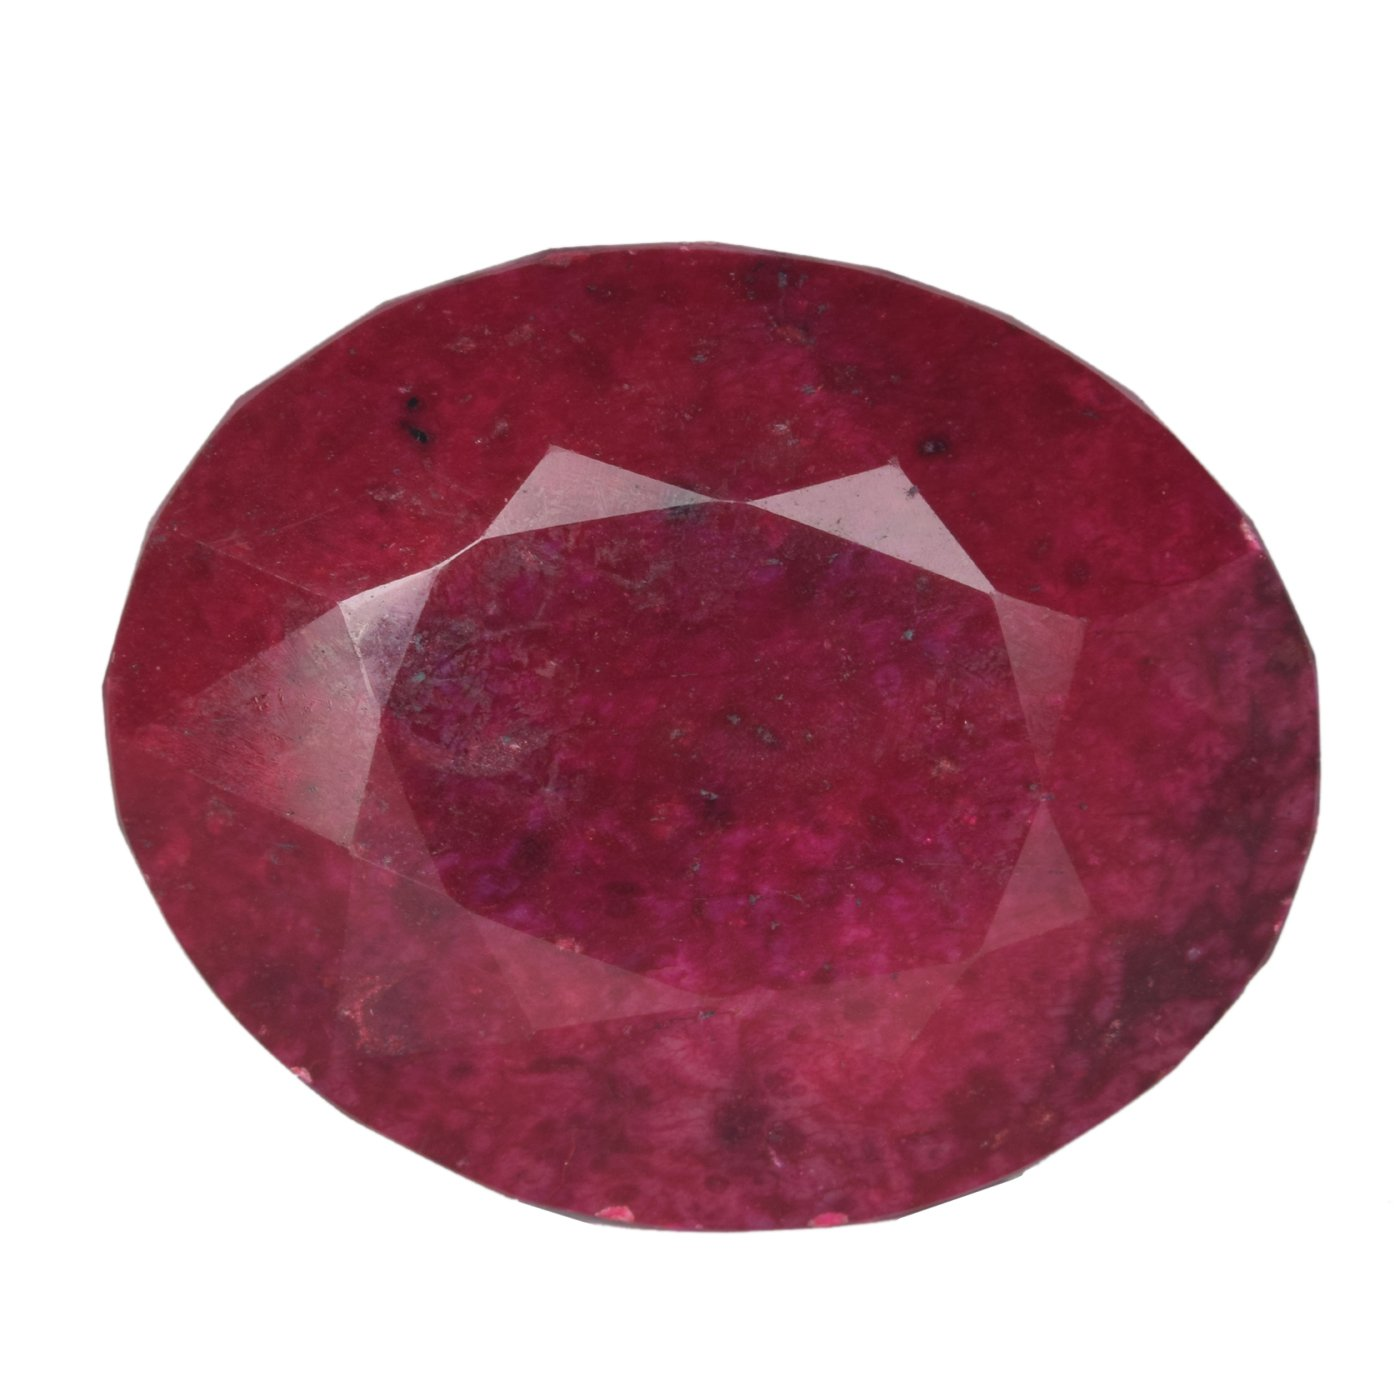 Approximately 2800 Ct. Natural Blood Red Ruby Oval Shape Faceted Cut Loose Gemstone Huge Ruby Loose Gemstone Beautiful Oval Shape B-4521